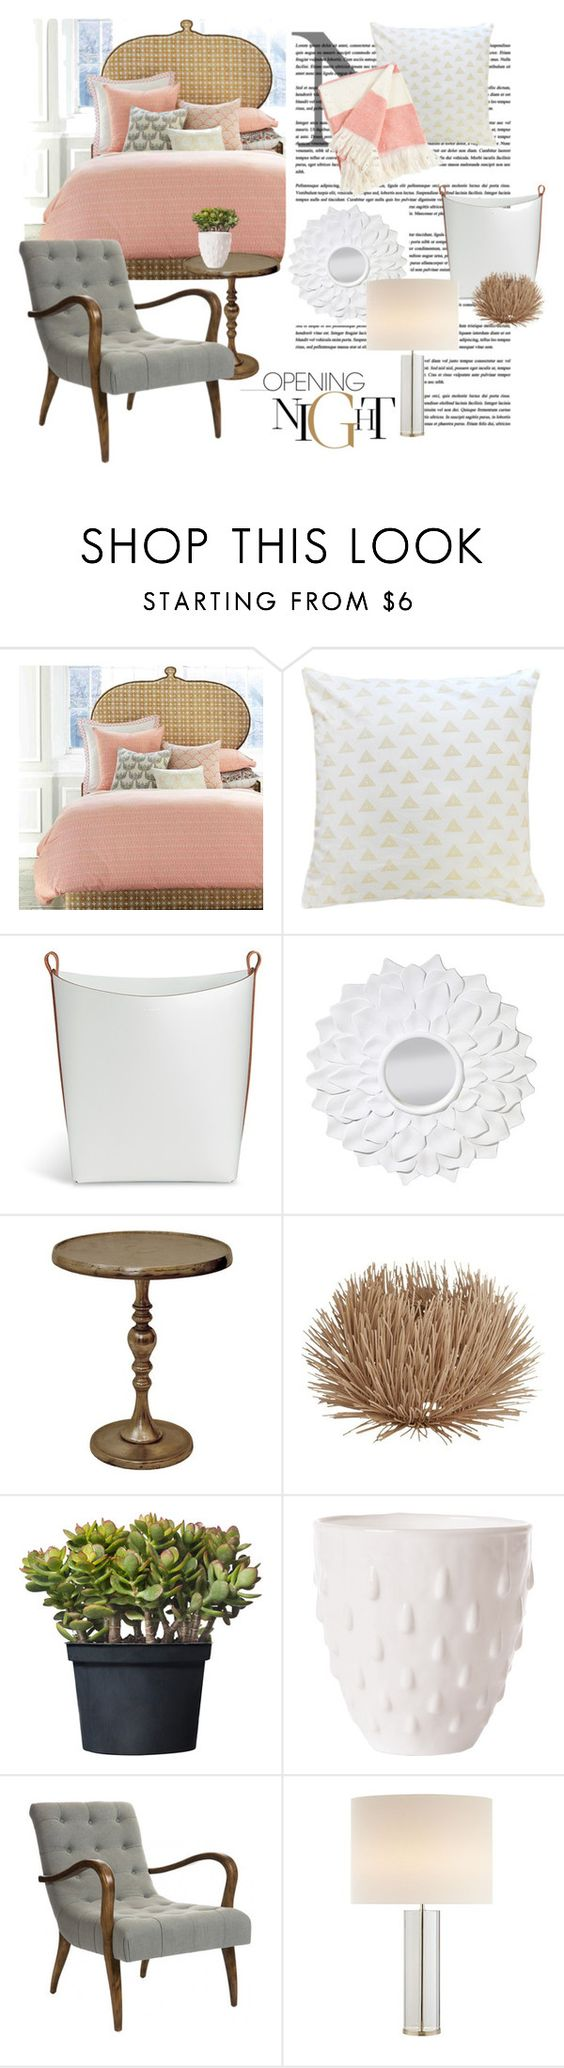 """Bedroom Decor"" by designed-4-life ❤ liked on Polyvore featuring interior, interiors, interior design, home, home decor, interior decorating, John Robshaw, Pinetti, Safavieh and Renwil"